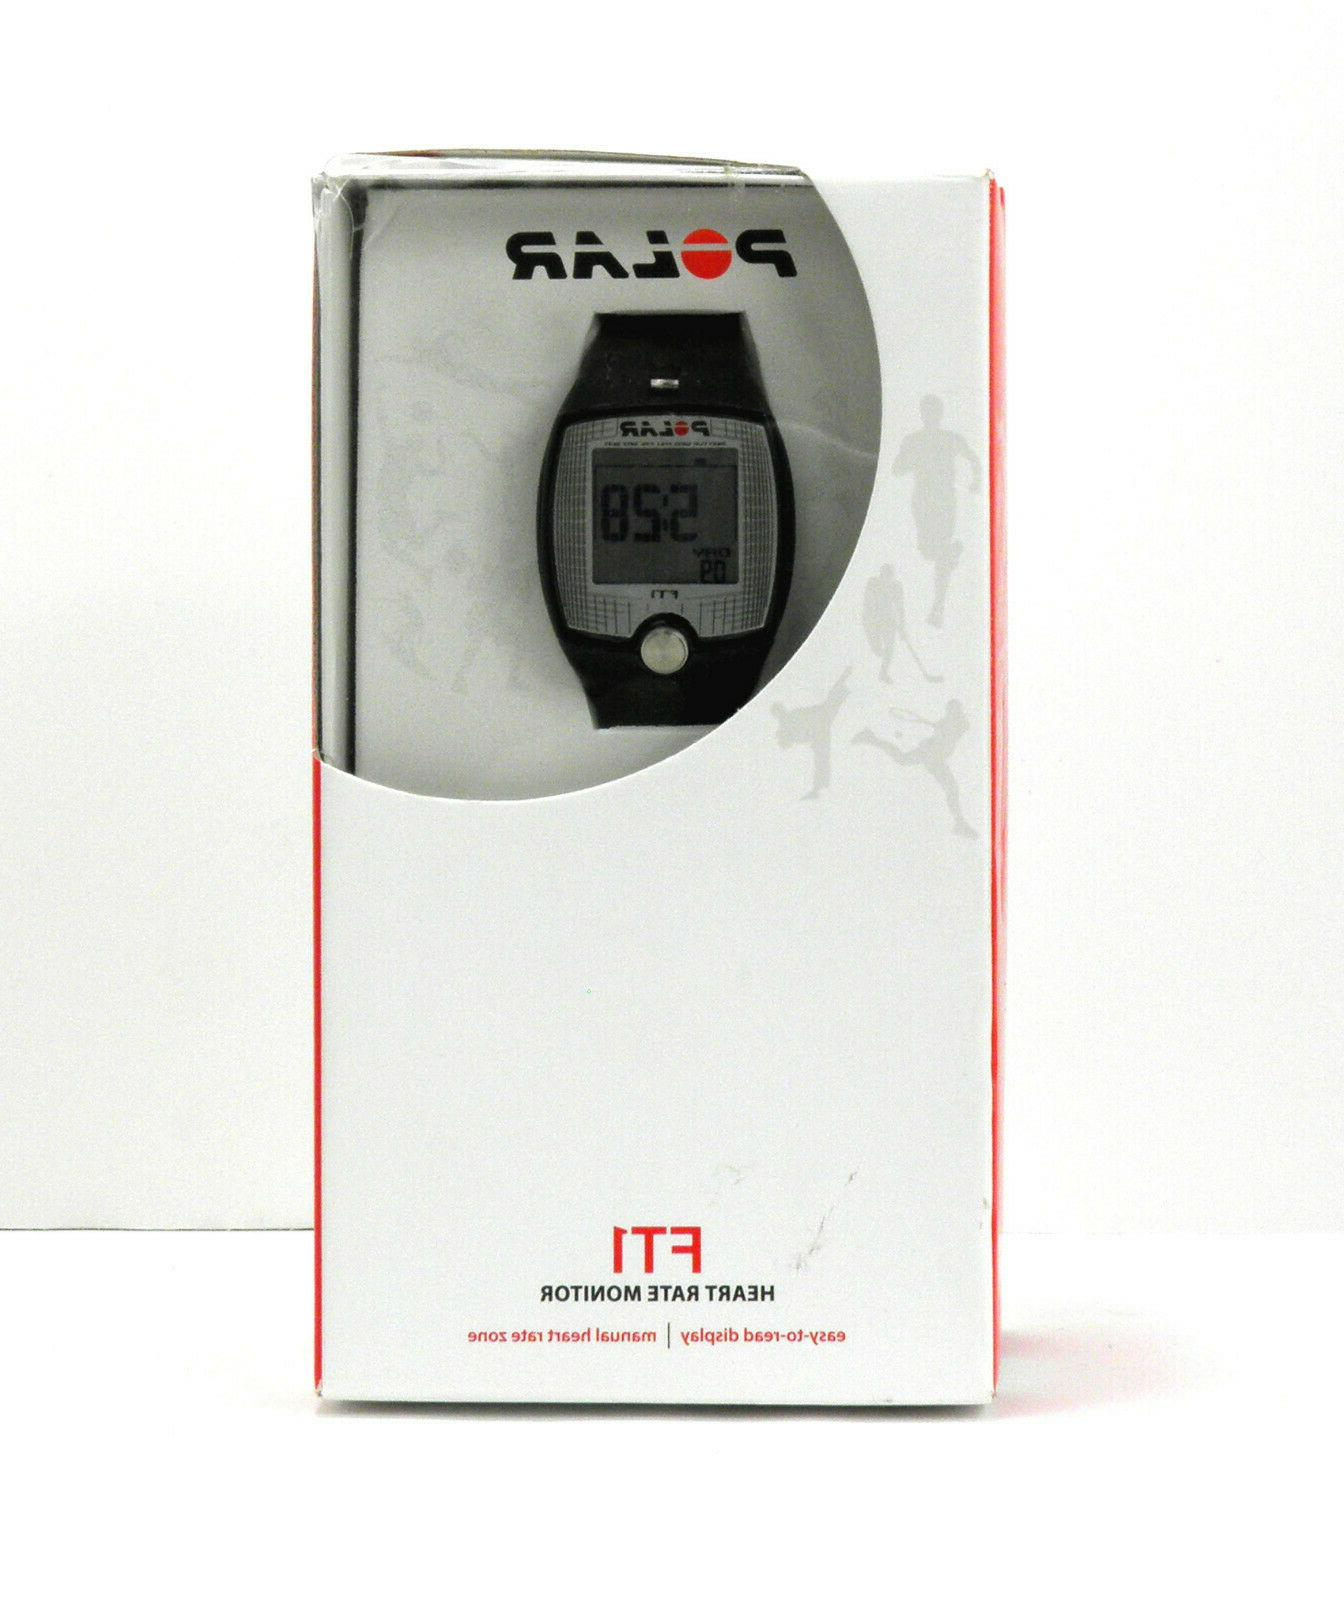 heart rate monitor ft1 open box free